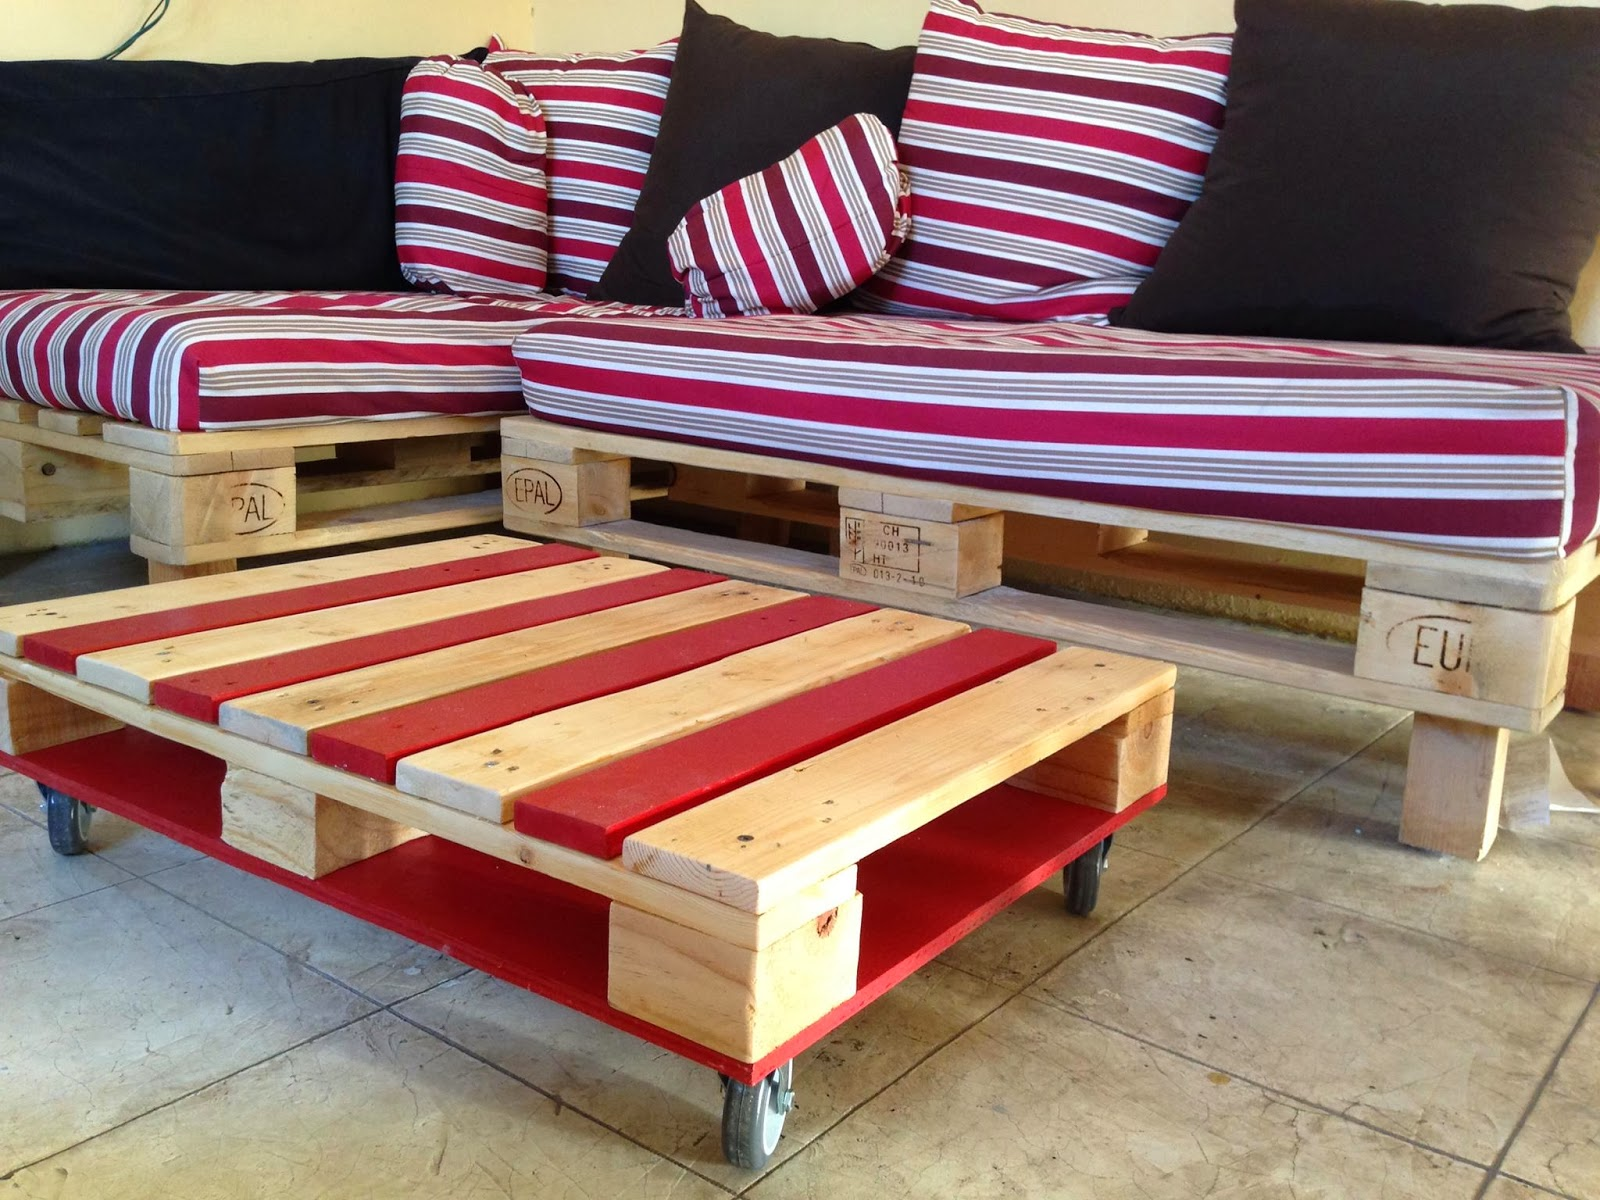 Aldea zur proyecto dise o de mobiliario con material de for Living room furniture made out of pallets